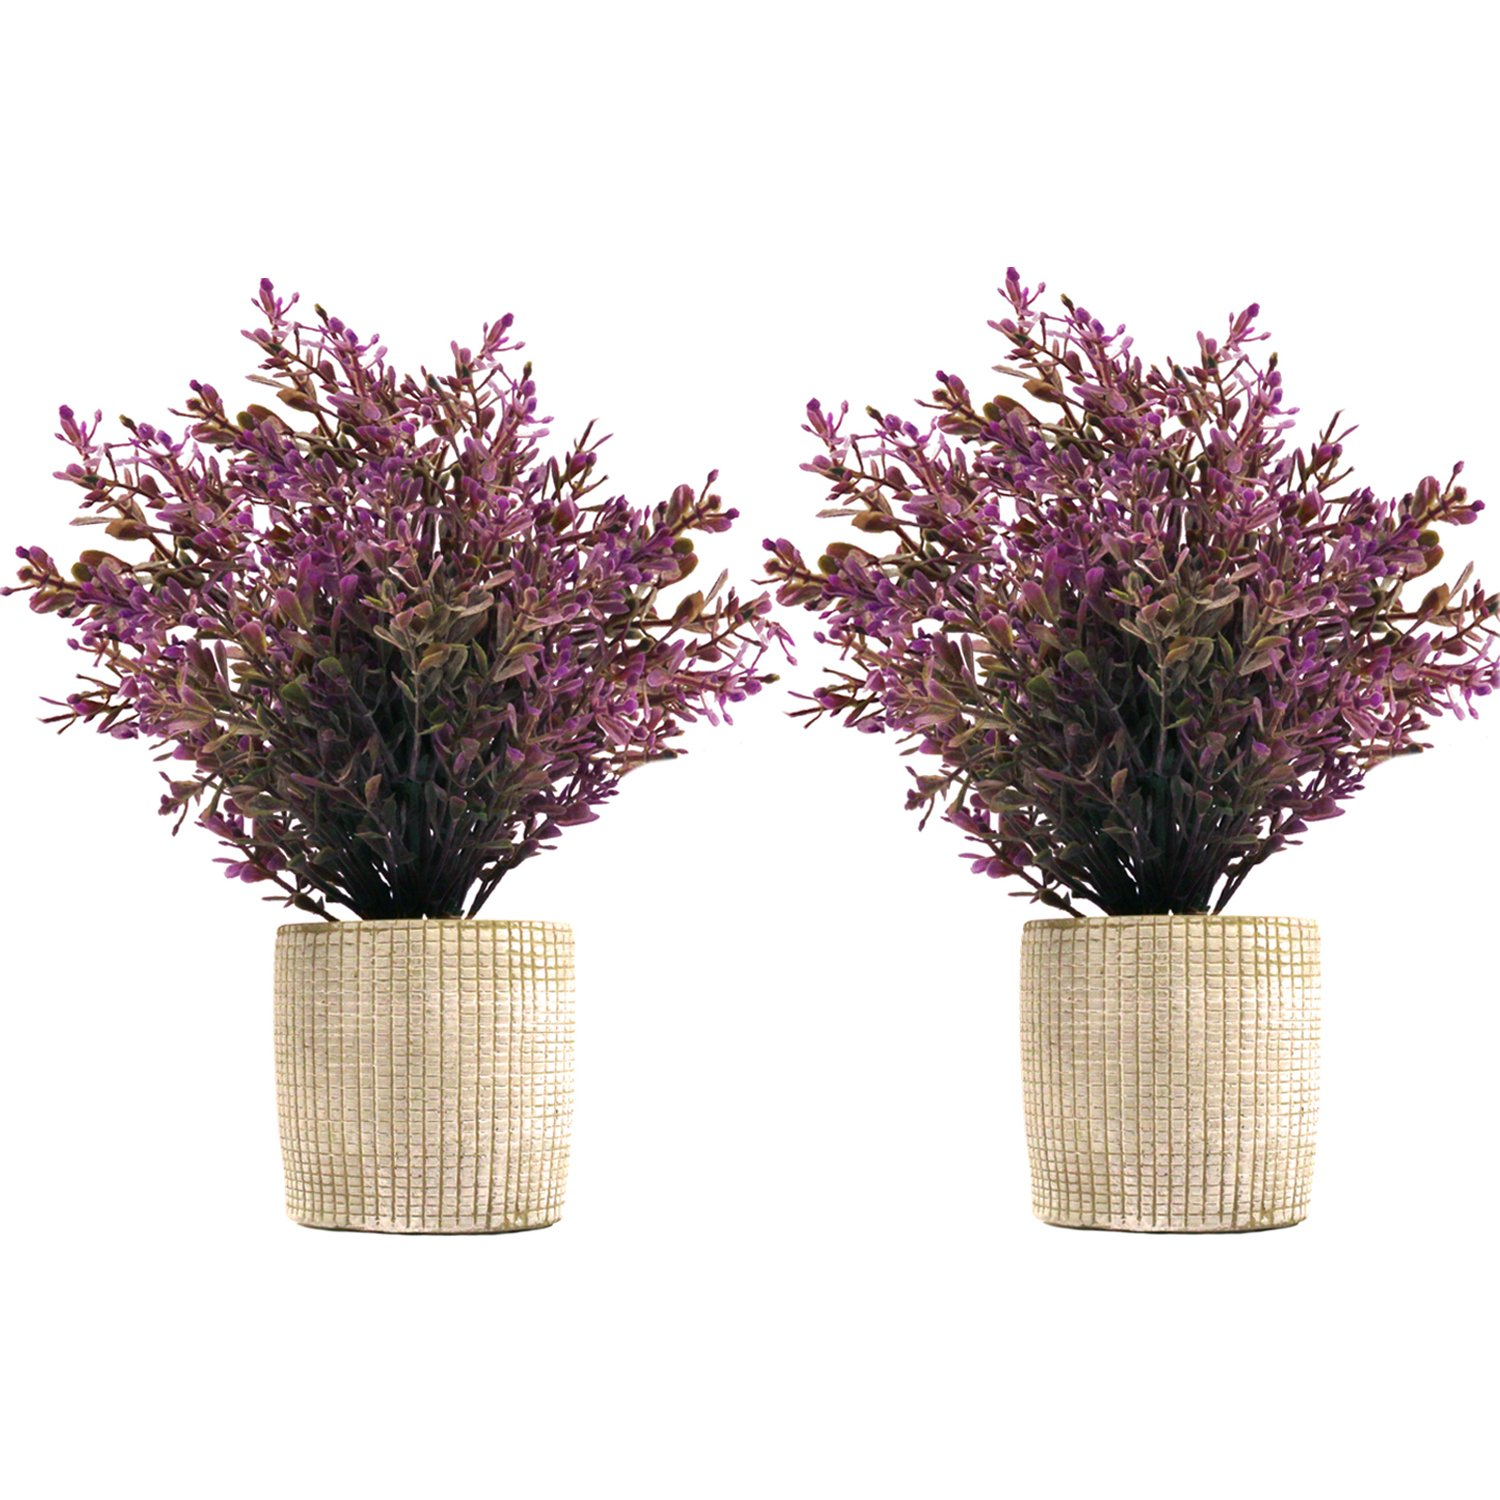 SHACOS 2 Pack of Artificial Potted Plants,Plastic Bonsai Plants with Retro Cement Planter Fake Greenery for House Office Garden Outdoor Décor (Purple Aglaia Odorata, 2) 4946112948662